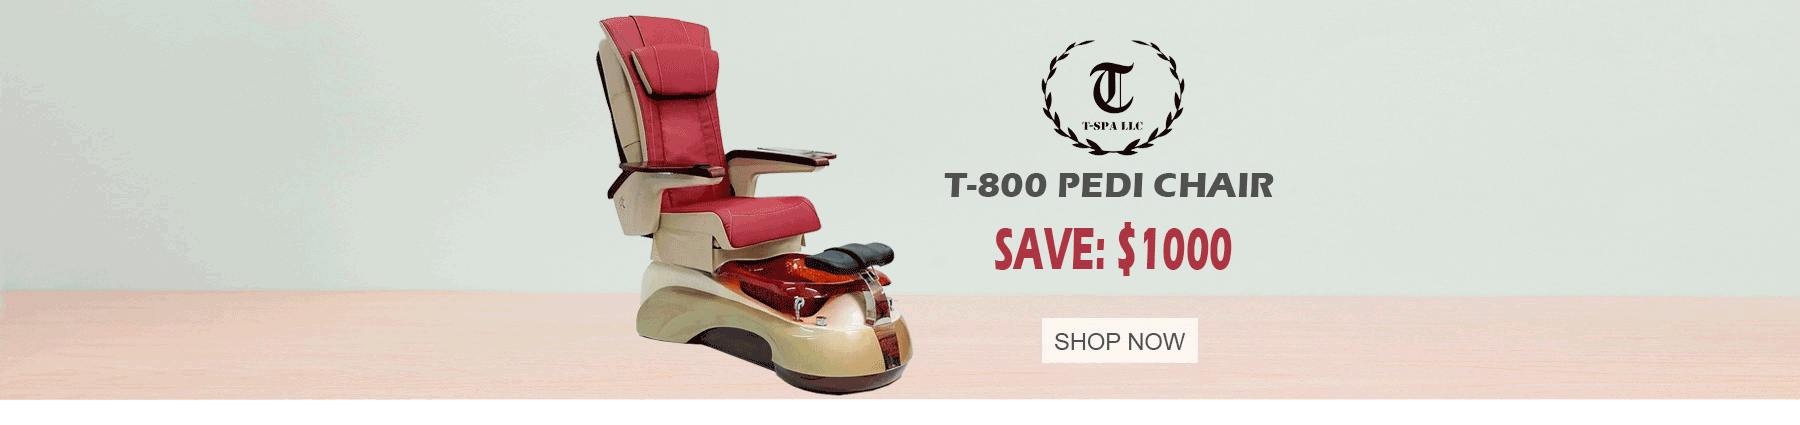 T800 pedicure chair banner